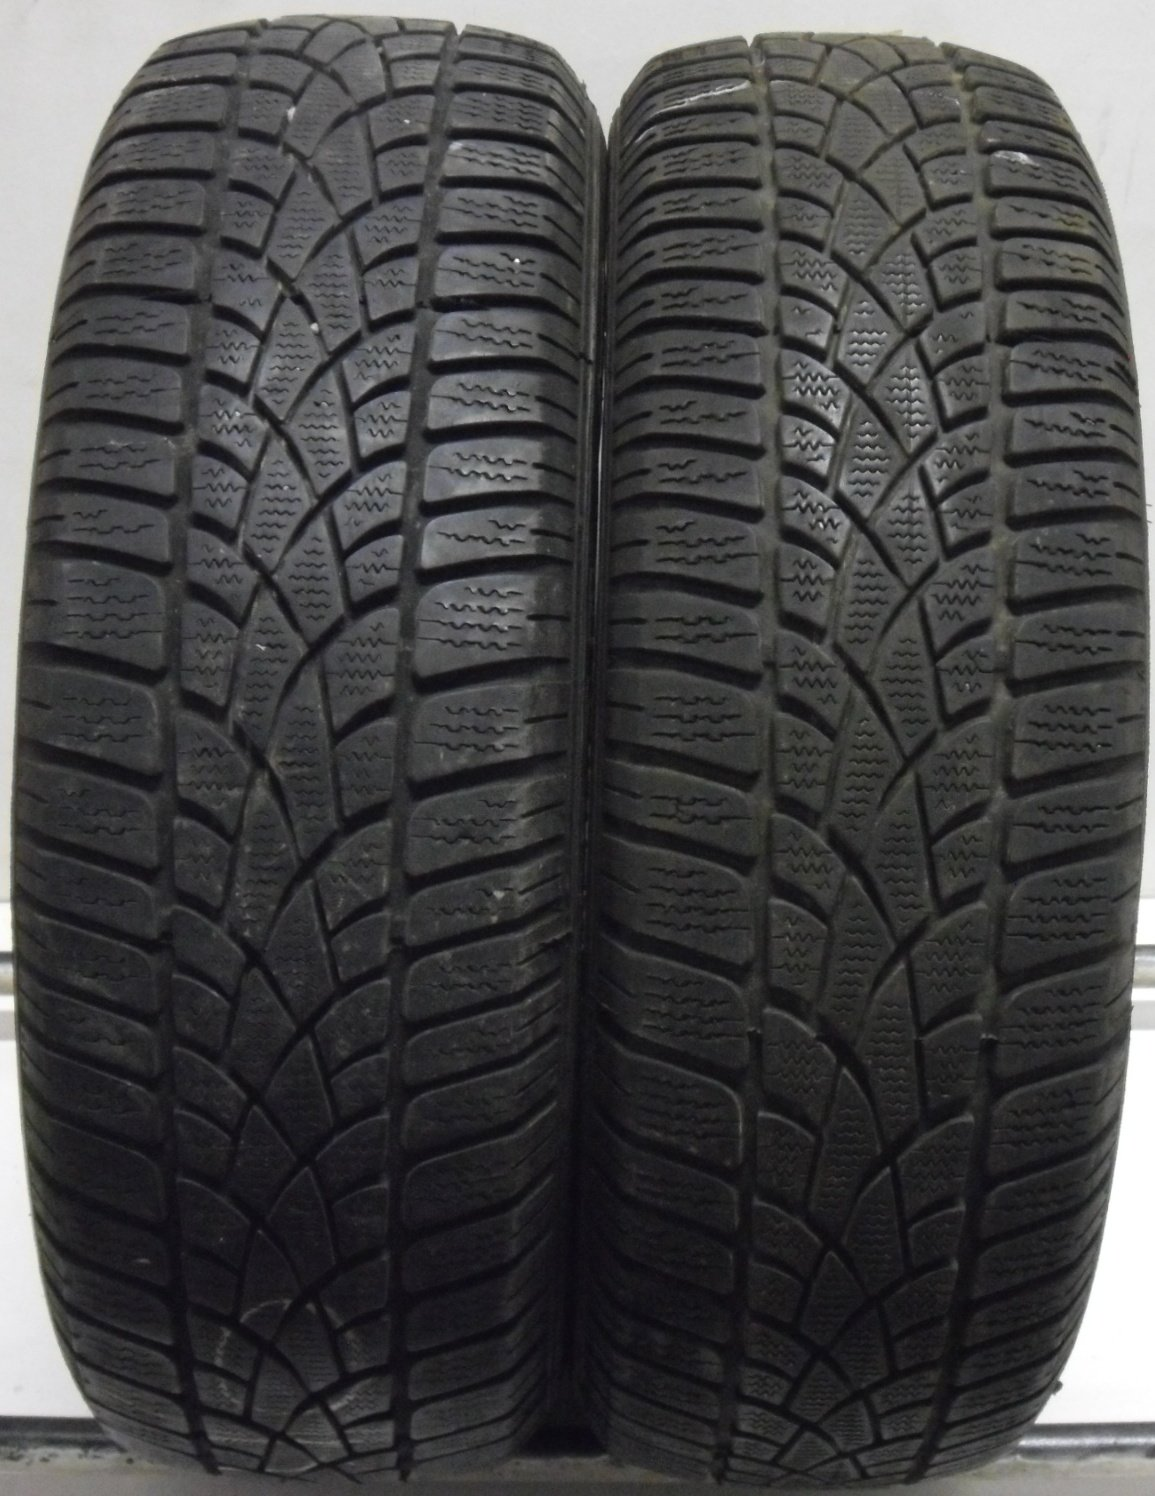 2 1956515 Dunlop 195 65 15 WINTER MUD SNOW Sport Part Worn Used Tyres x2 Two 3D 4mm to 5mm